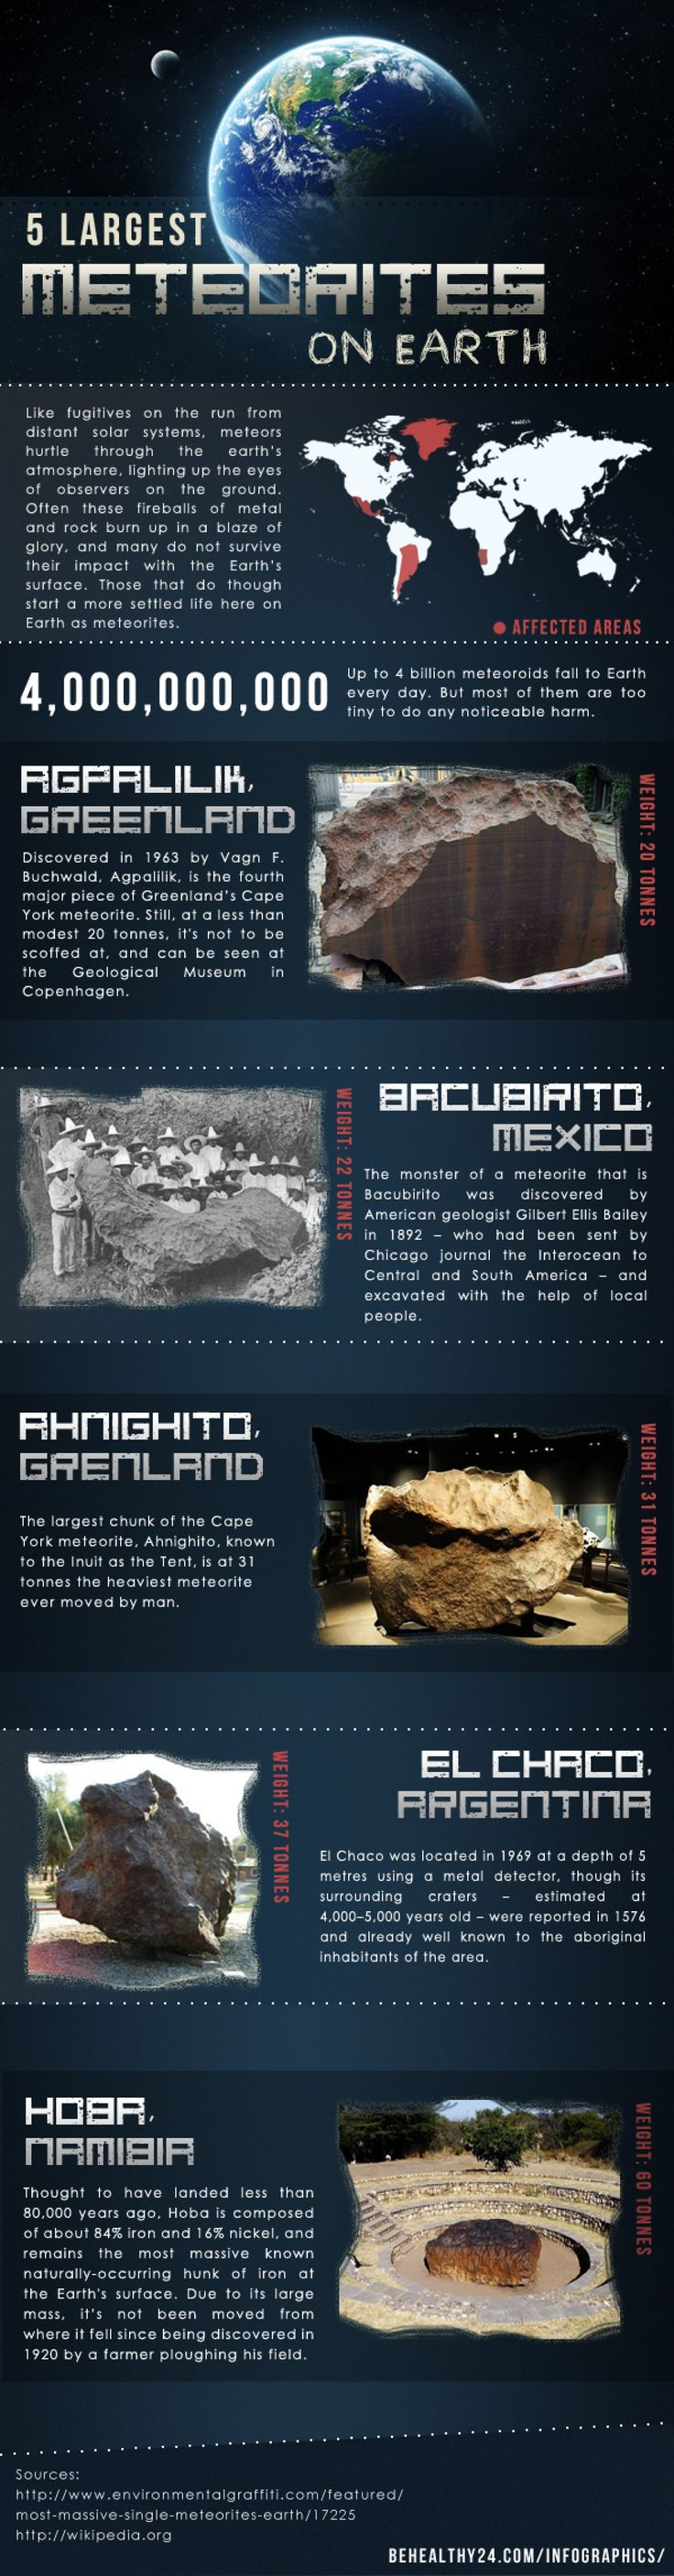 Did you know that up to 4,000,000,000 meteoroids fall to our planet every single day. Most of them burn in the Earth's atmosphere, however, some of them impact with the surface. This infographic will show you 5 largest meteorites on our planet.